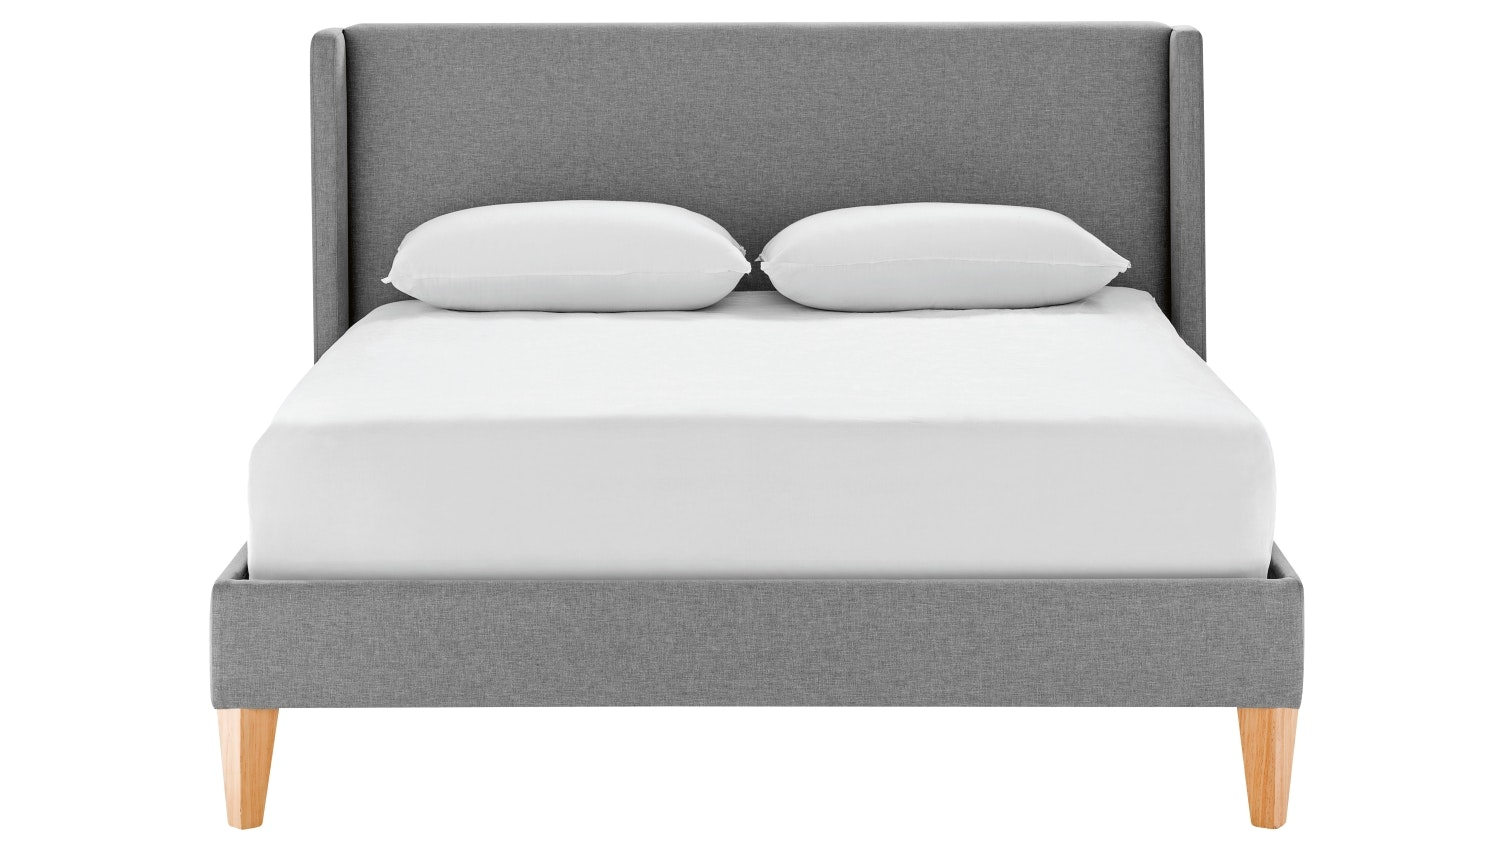 Harlow Bed Frame